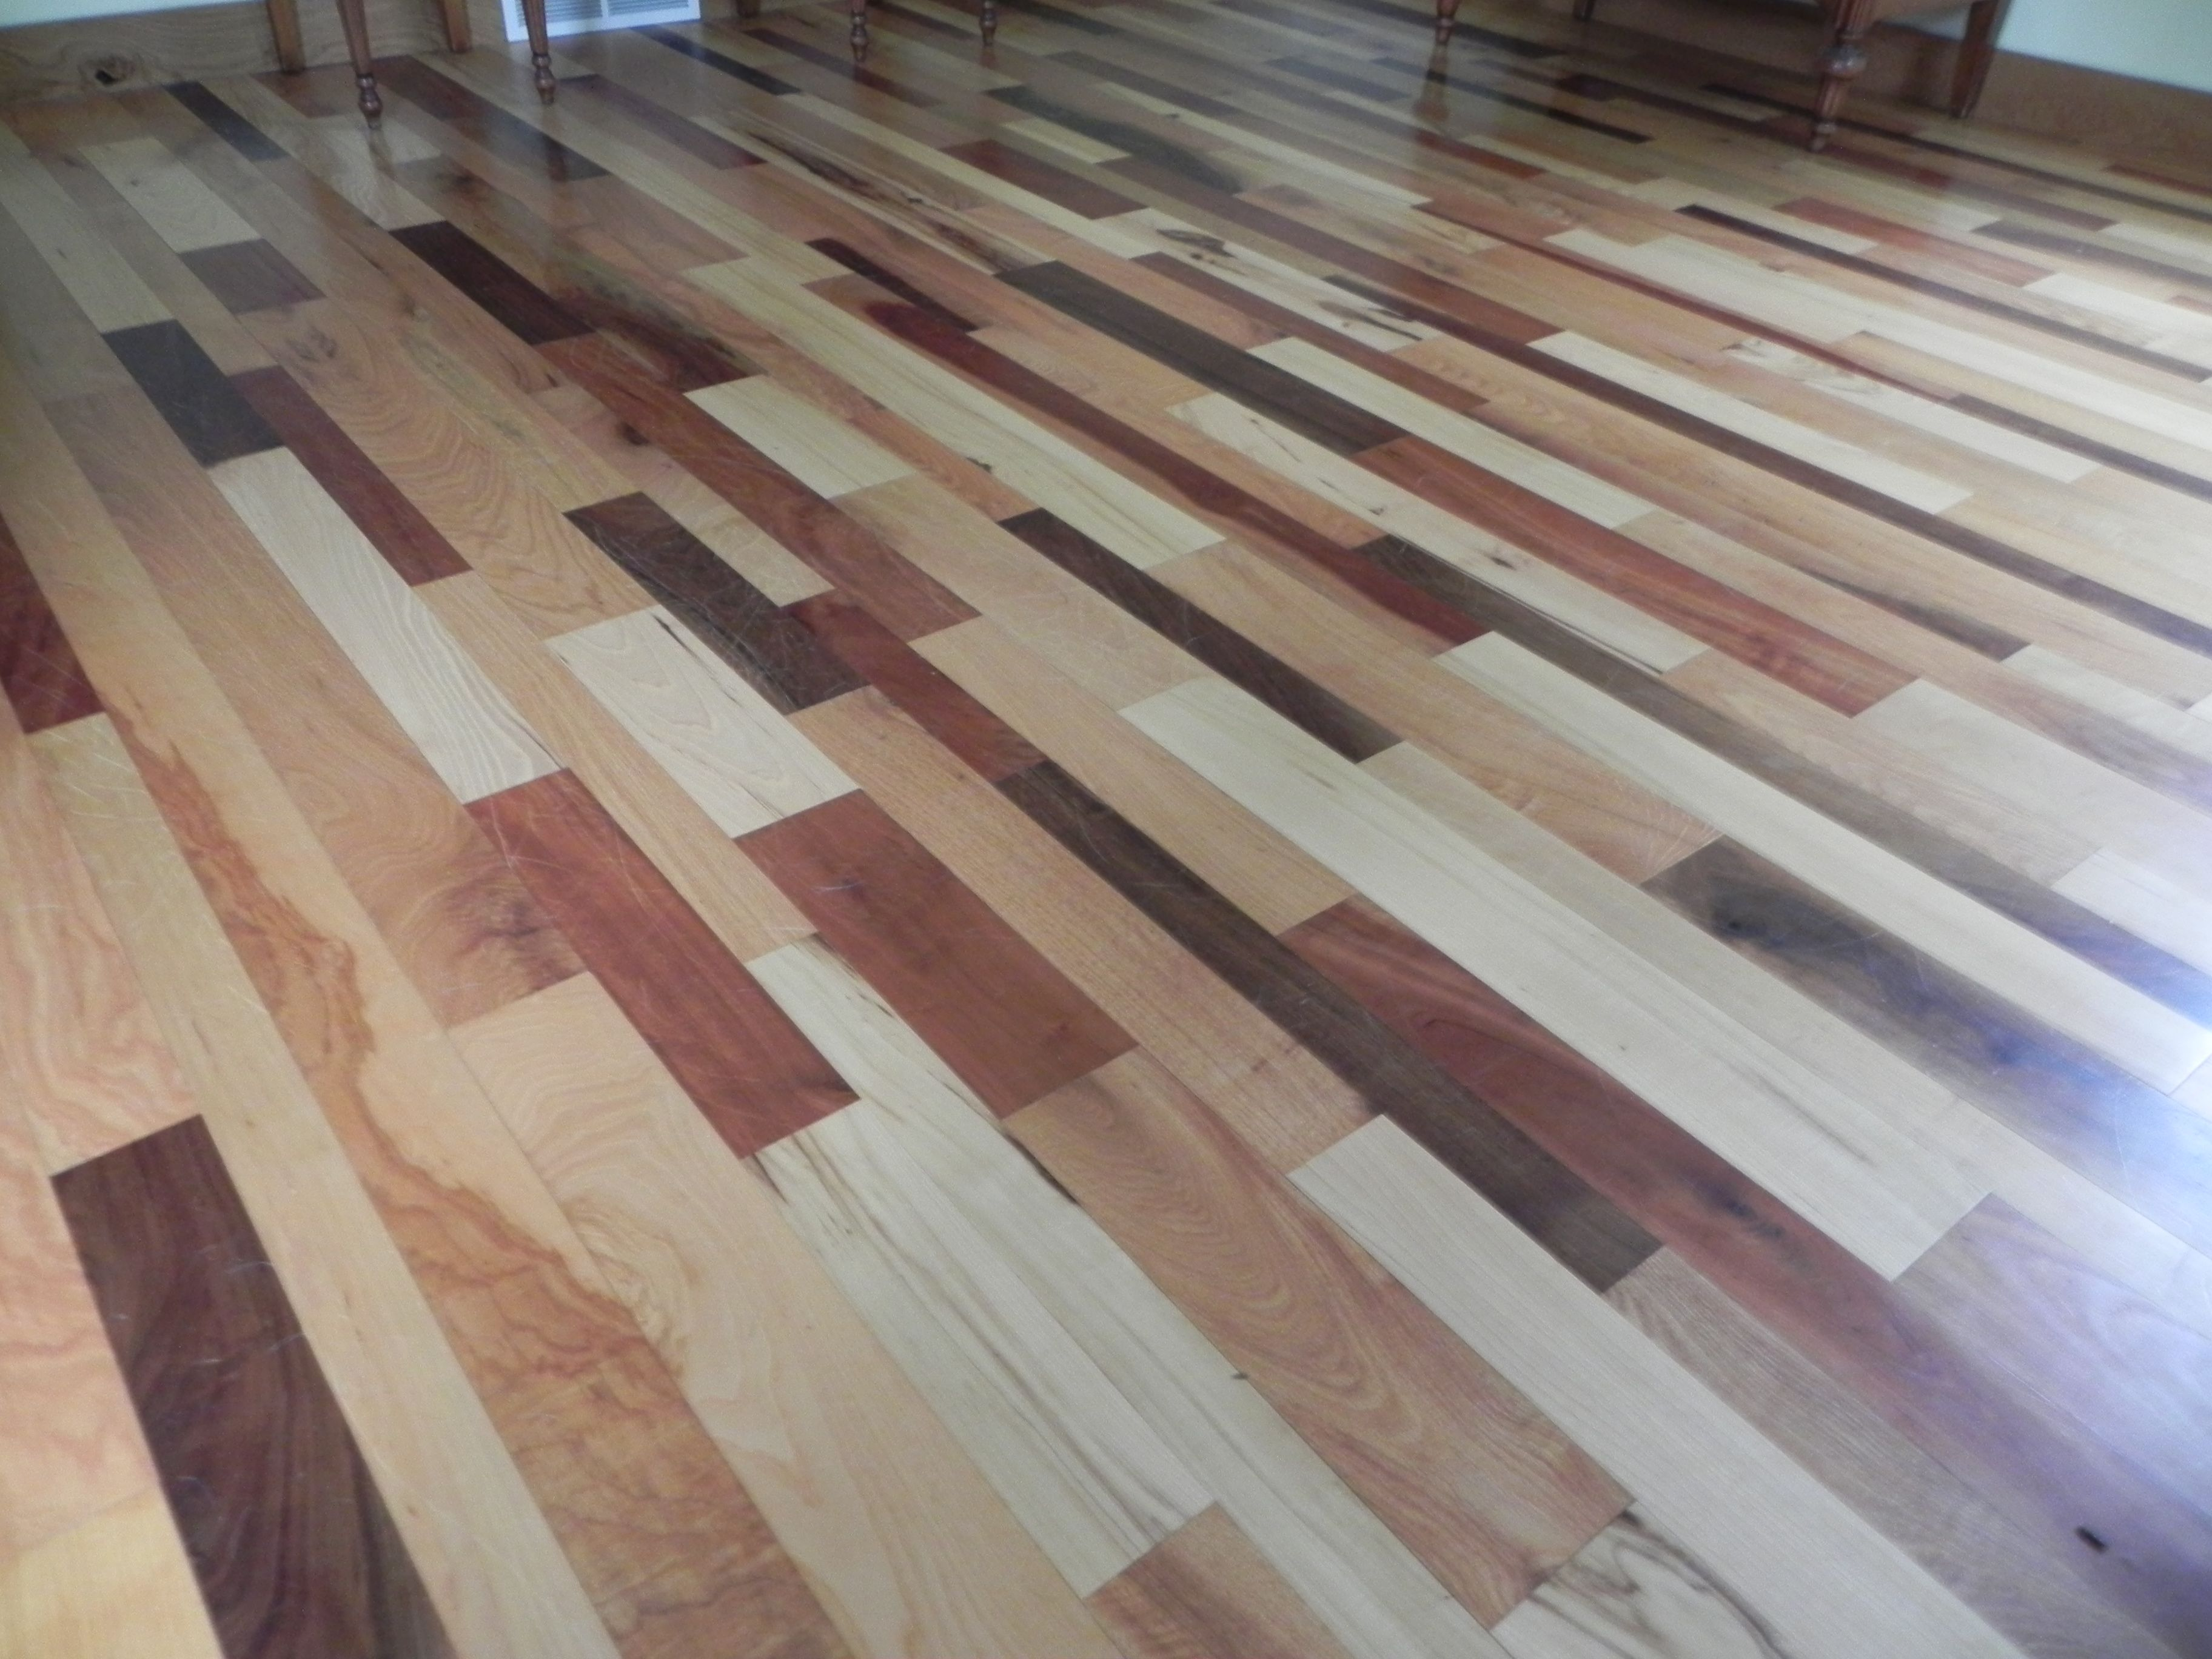 Add A Unique Touch To Your Home: This High Quality Hardwood Flooring Will Add A Unique